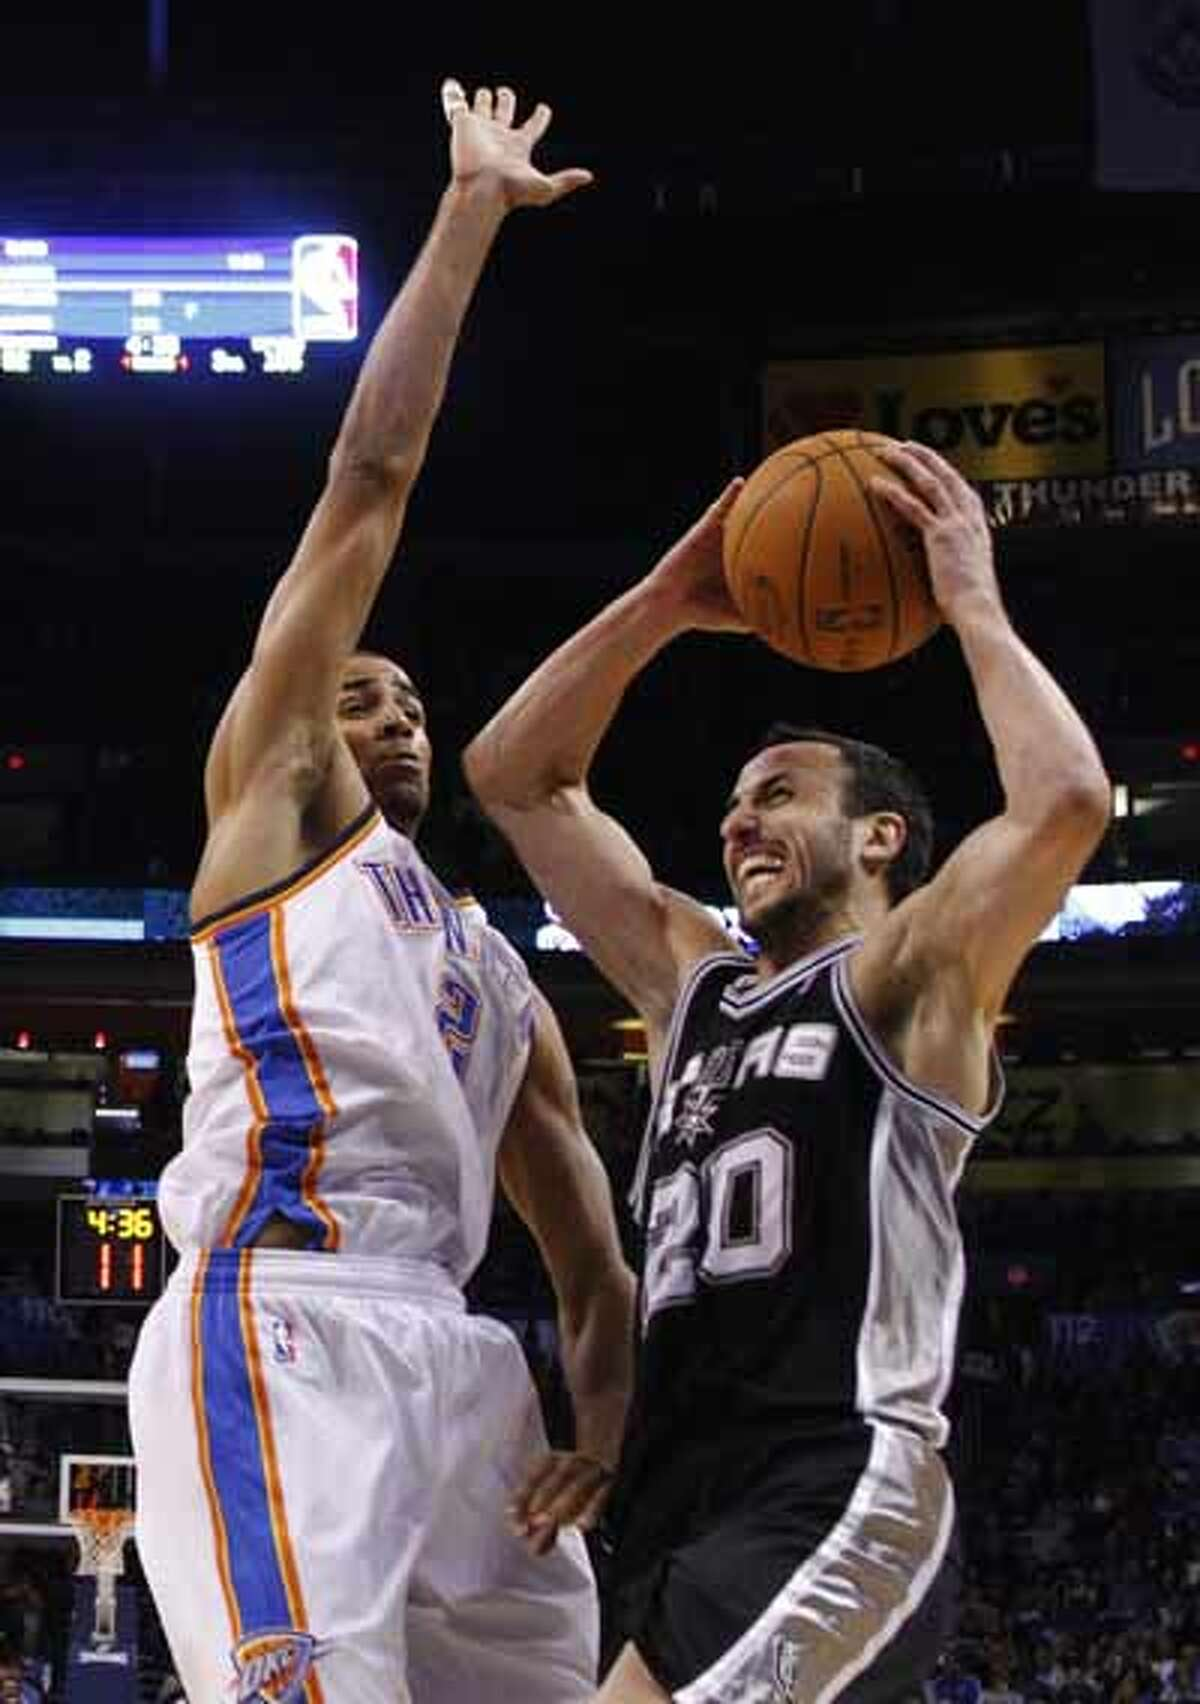 San Antonio Spurs guard Manu Ginobili shoots as Oklahoma City Thunder guard Thabo Sefolosha, of Switzerland, defends, in the fourth quarter of an NBA basketball game in Oklahoma City, Nov. 14, 2010. Ginobili had 21 points as San Antonio won 117-104.